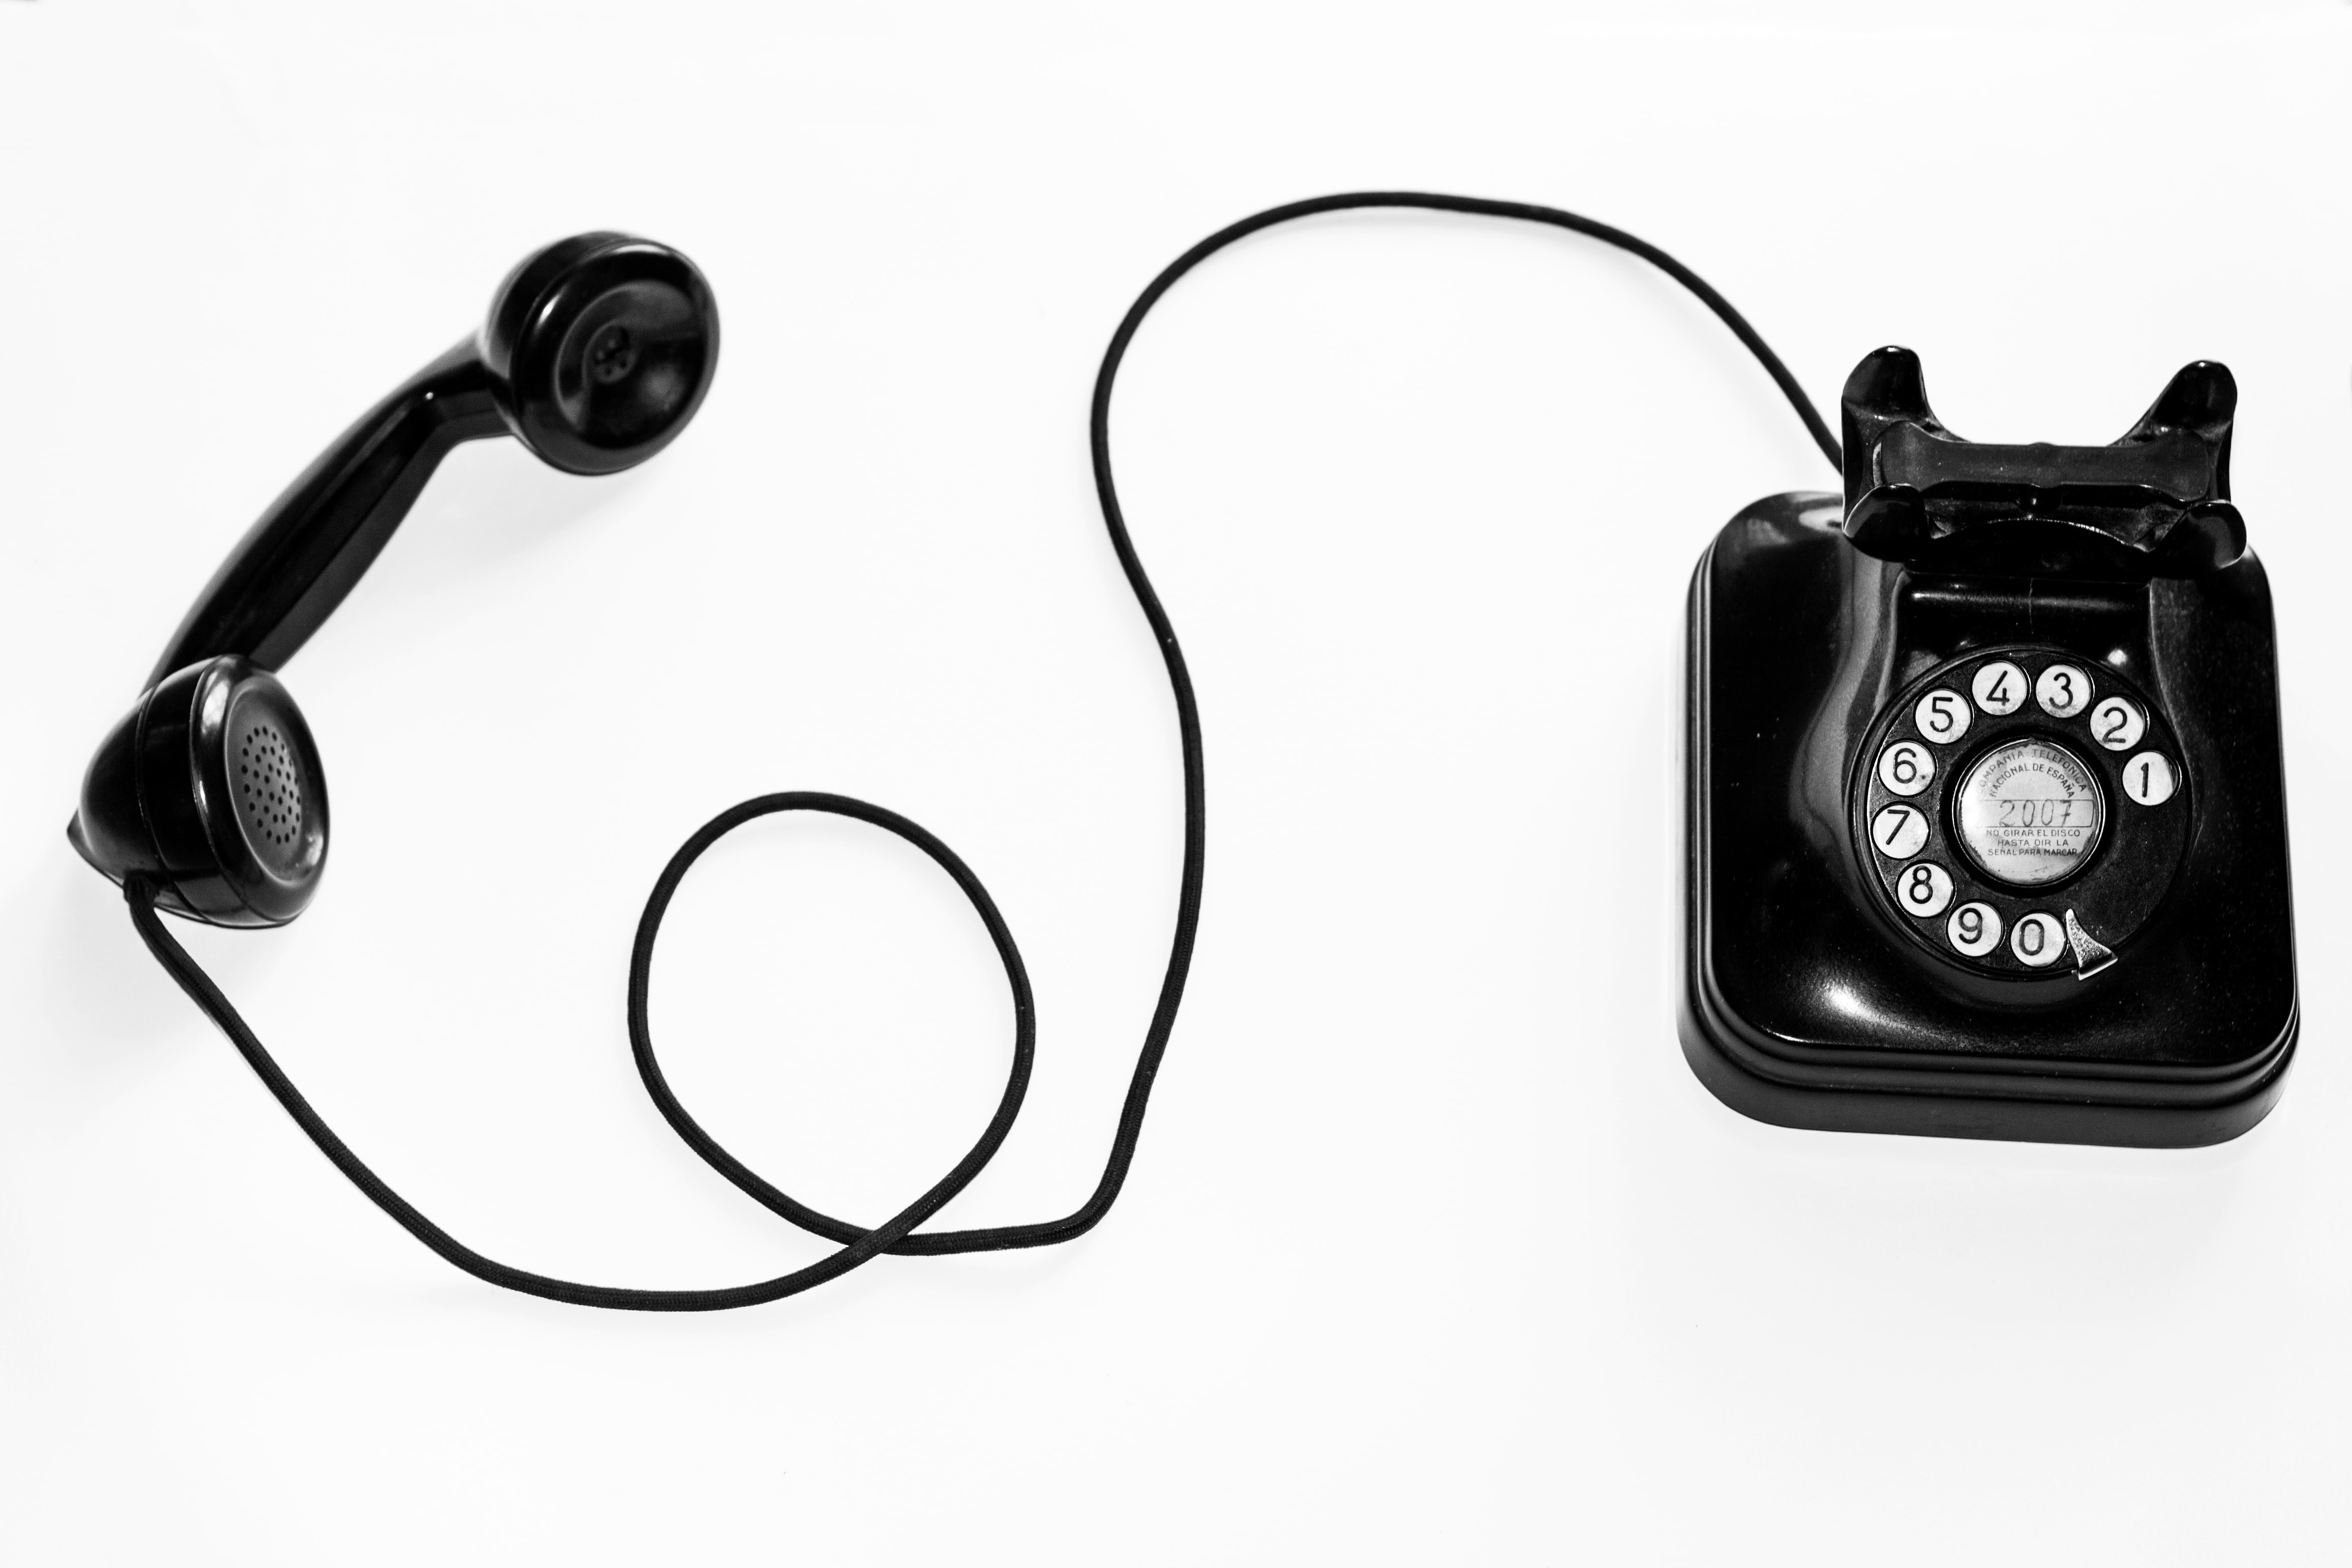 Black rotary phone off receiver with white numbers